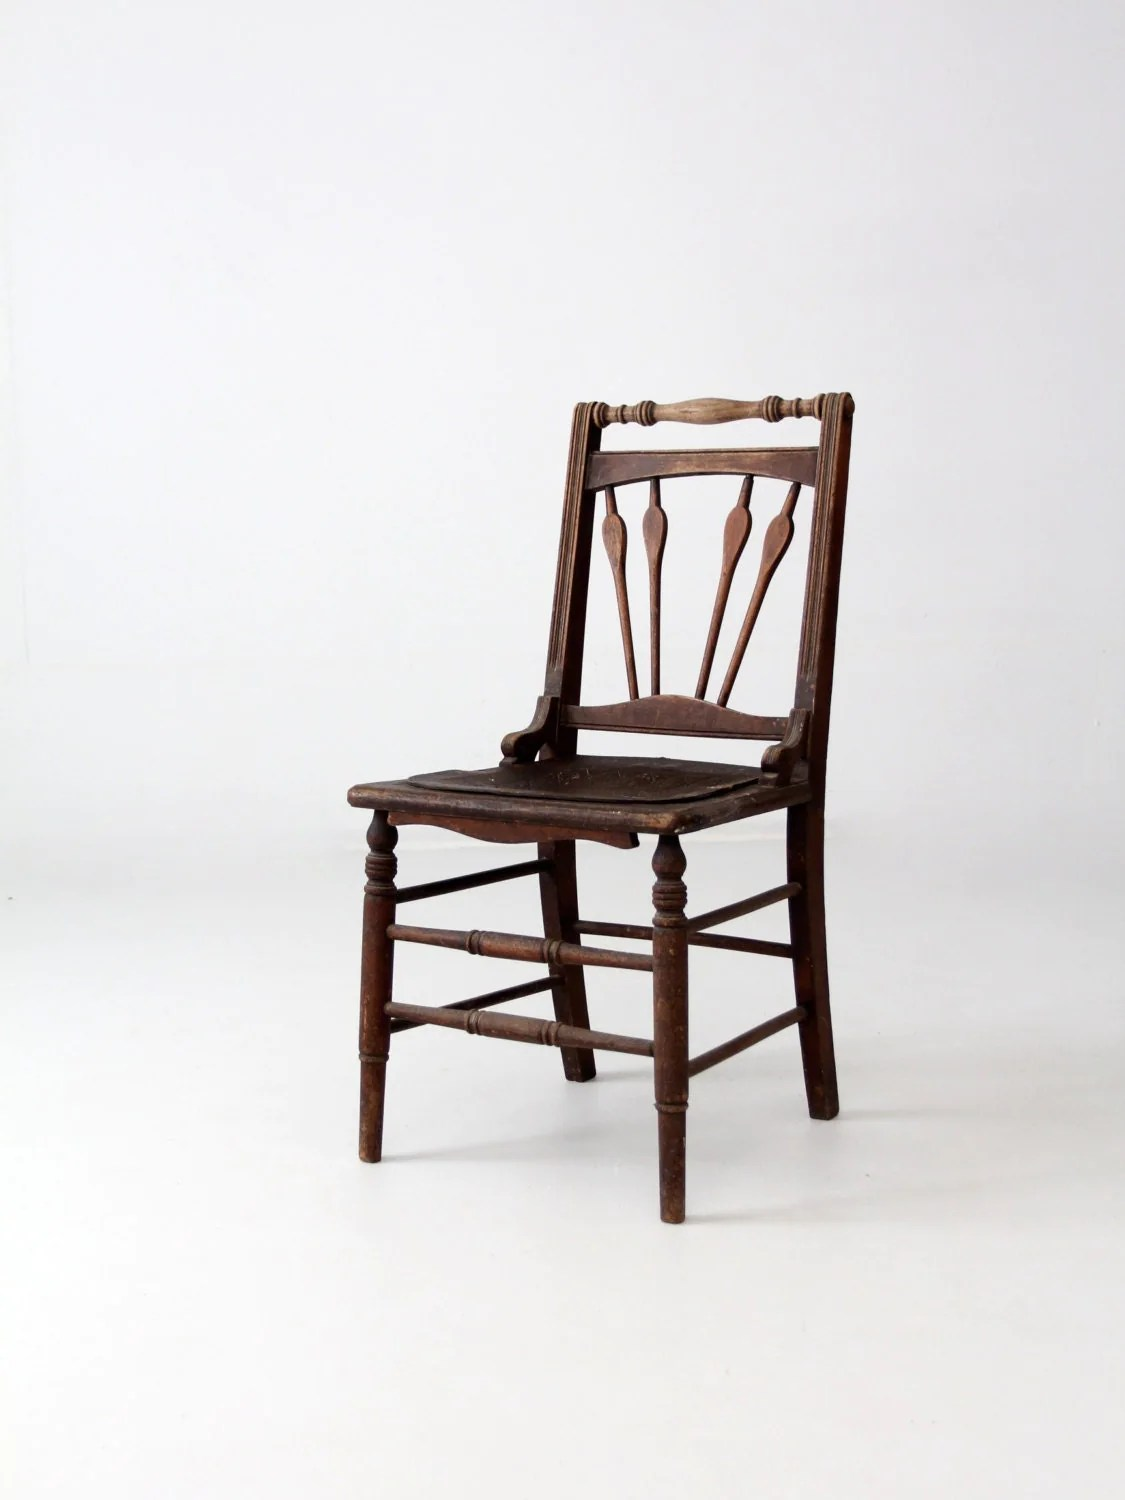 Antique Wooden Chair Antique Wood Chair With Leather Seat Wooden Accent Chair